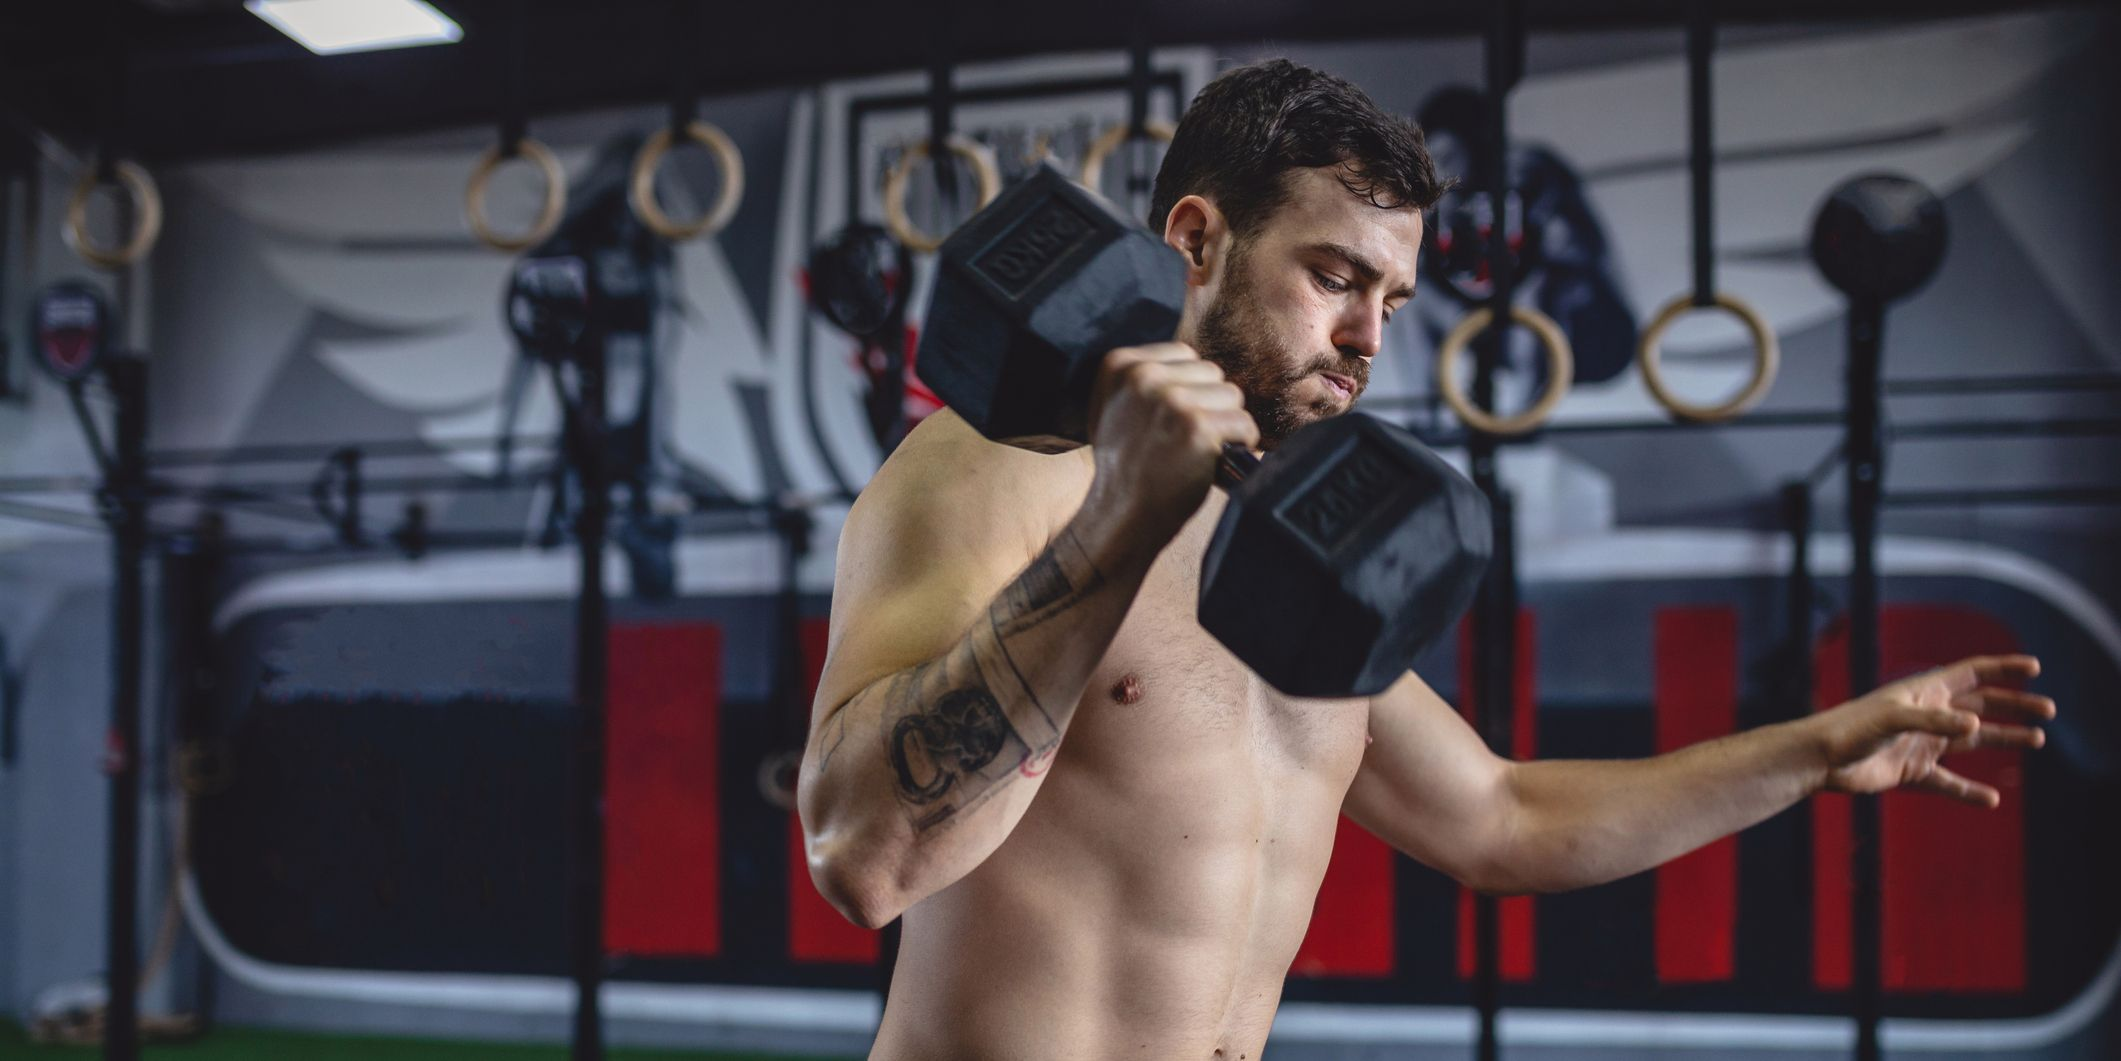 Motivated athlete exercising with dumbbells at a gym